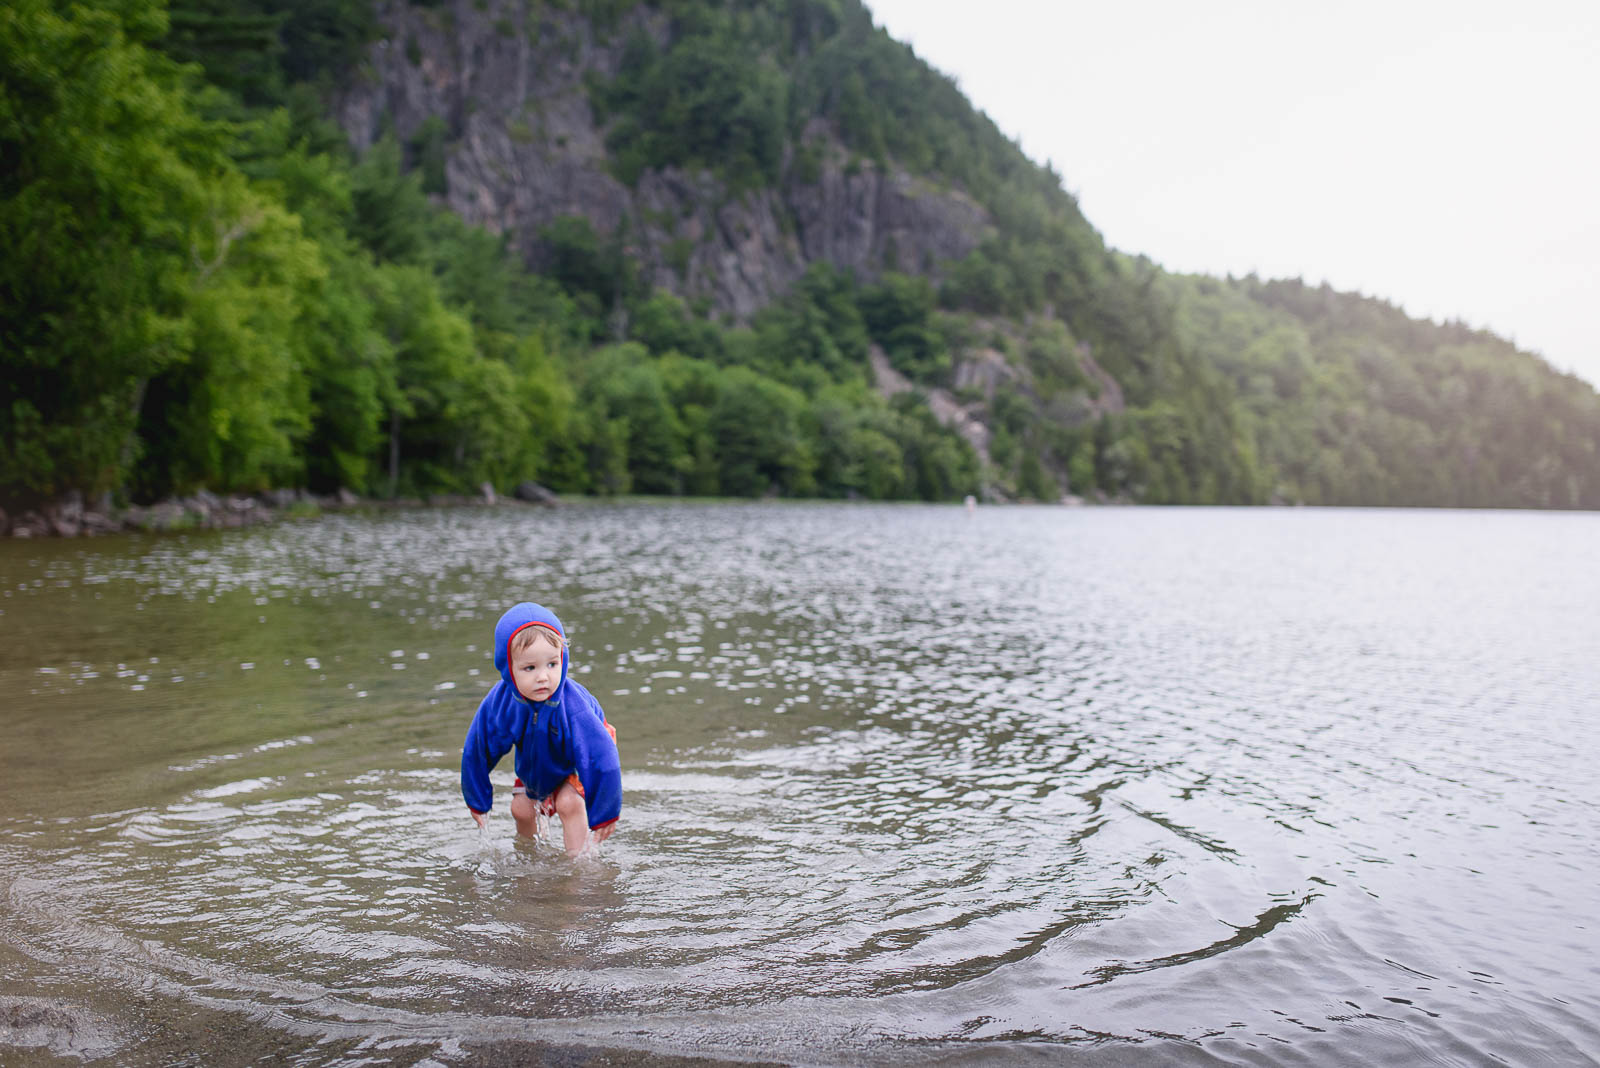 My little one enjoying the cold water at Acadia National Park in Maine. These documentary-style images are some of my favorite to capture on trips.